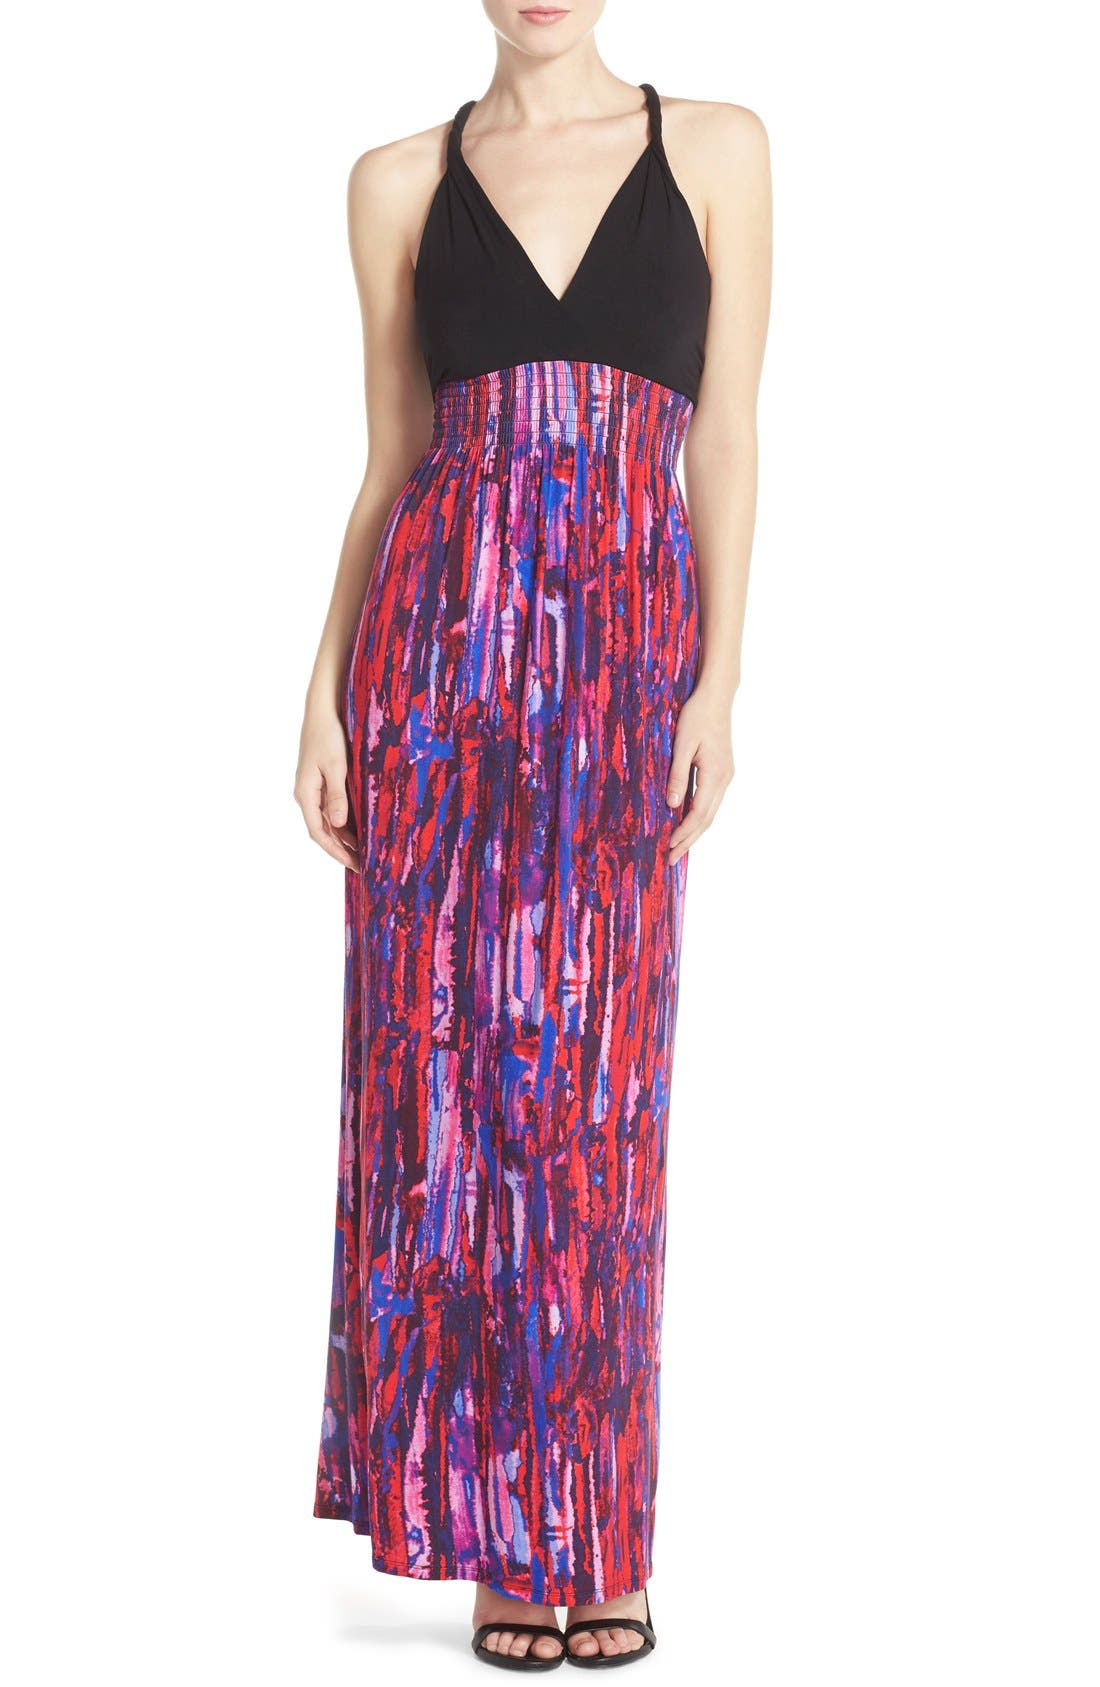 Alternate Image 1 Selected - Felicity & Coco Printed Maxi Dress (Regular & Petite) (Nordstrom Exclusive)